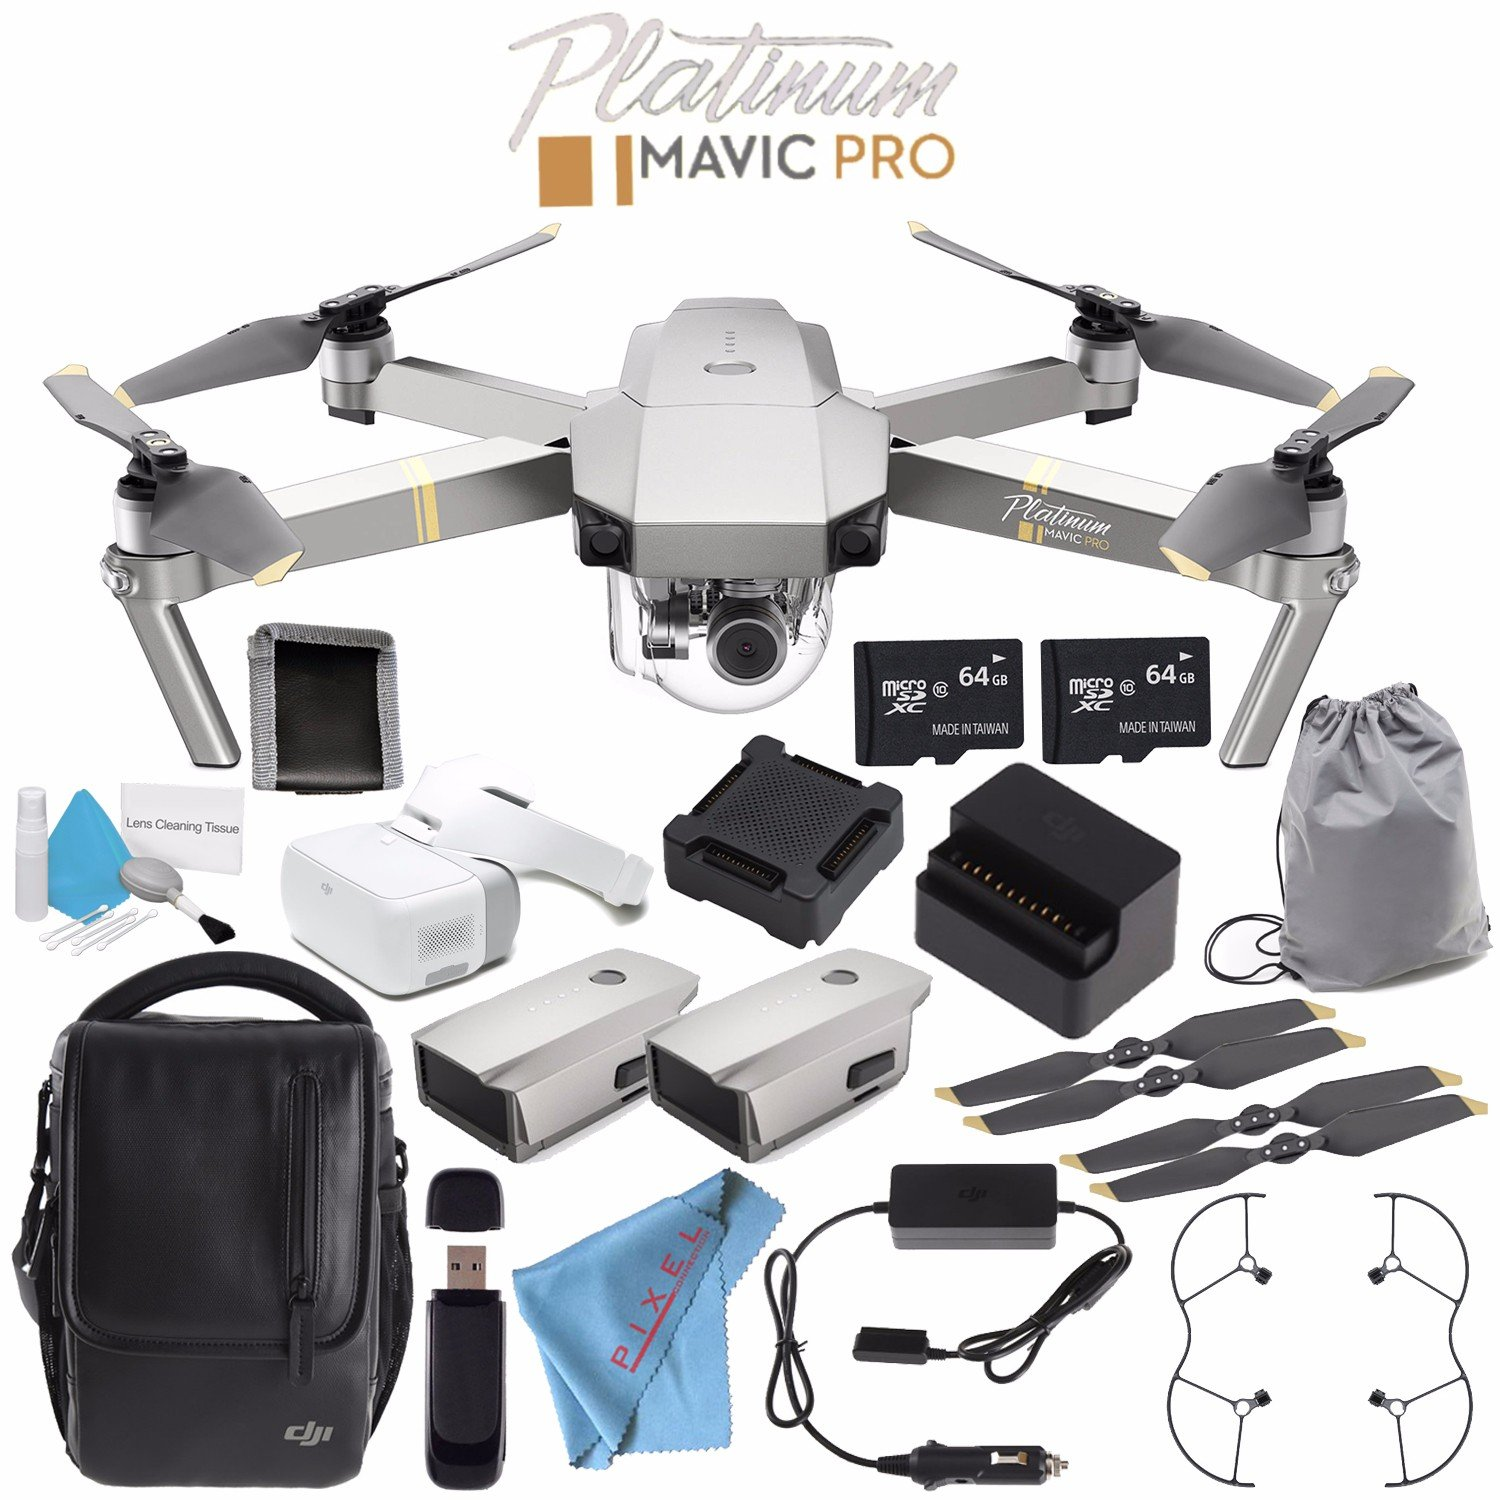 DJI Mavic Pro Platinum Fly More Combo CP.PT.00000069.01 Goggles FPV Headset CP.PT.000672 Goggles Sleeve CP.PT.000878 + Deluxe Cleaning Kit + Memory Card Wallet + 64GB microSDXC Bundle